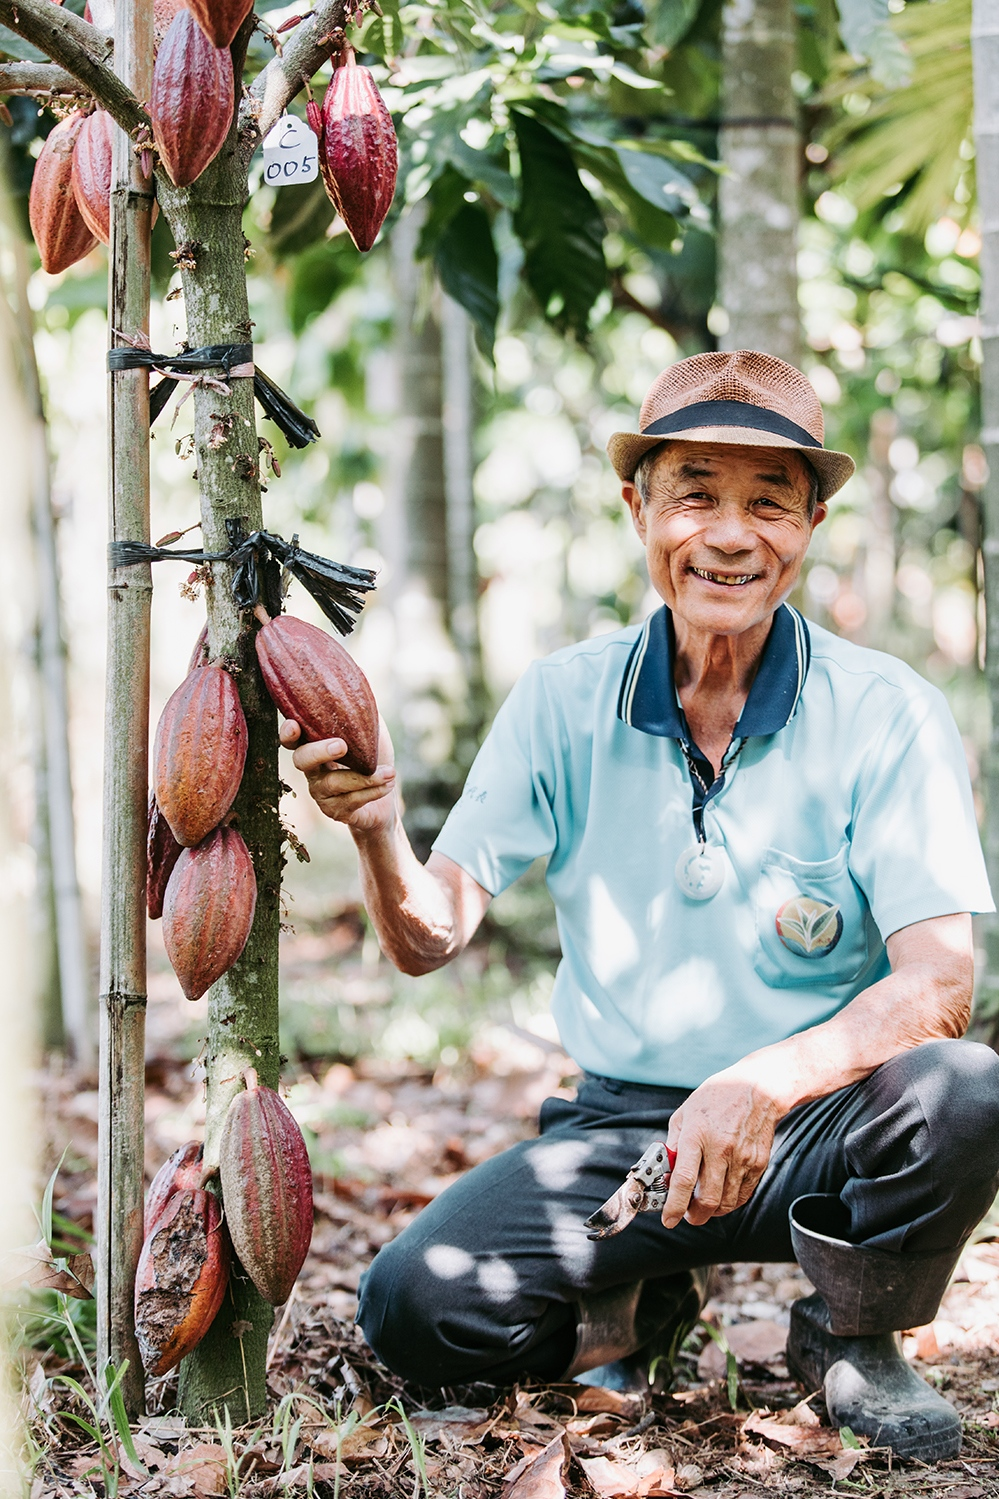 Cacao farmer and his cacao tree in Taiwan